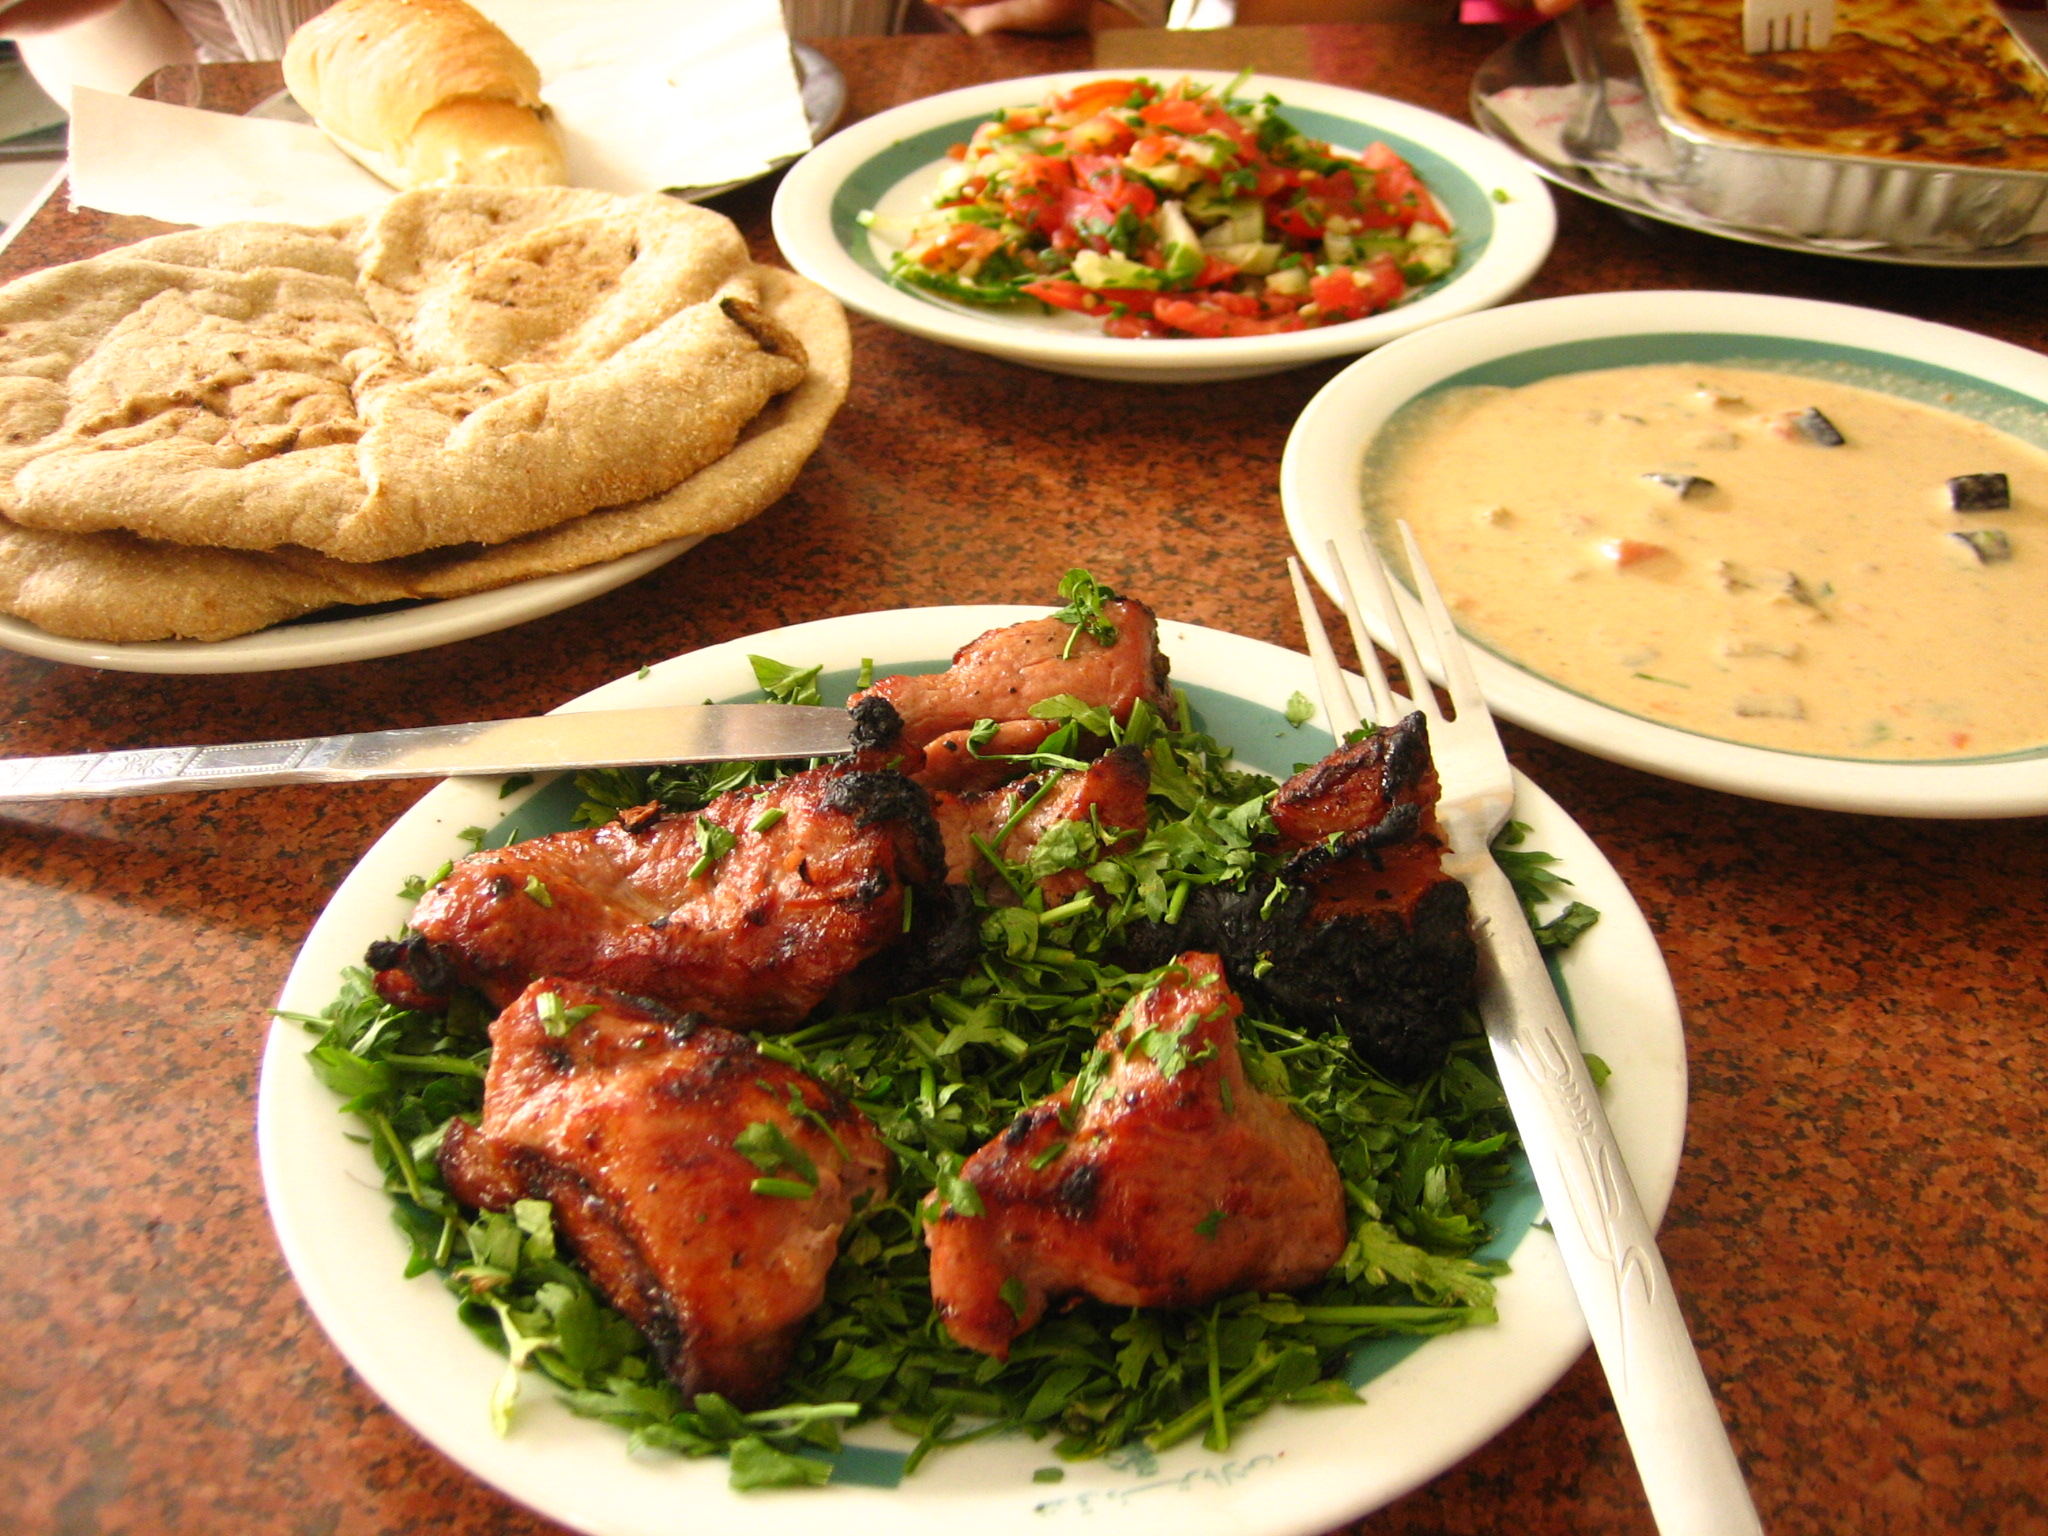 Pictures of egyptians food